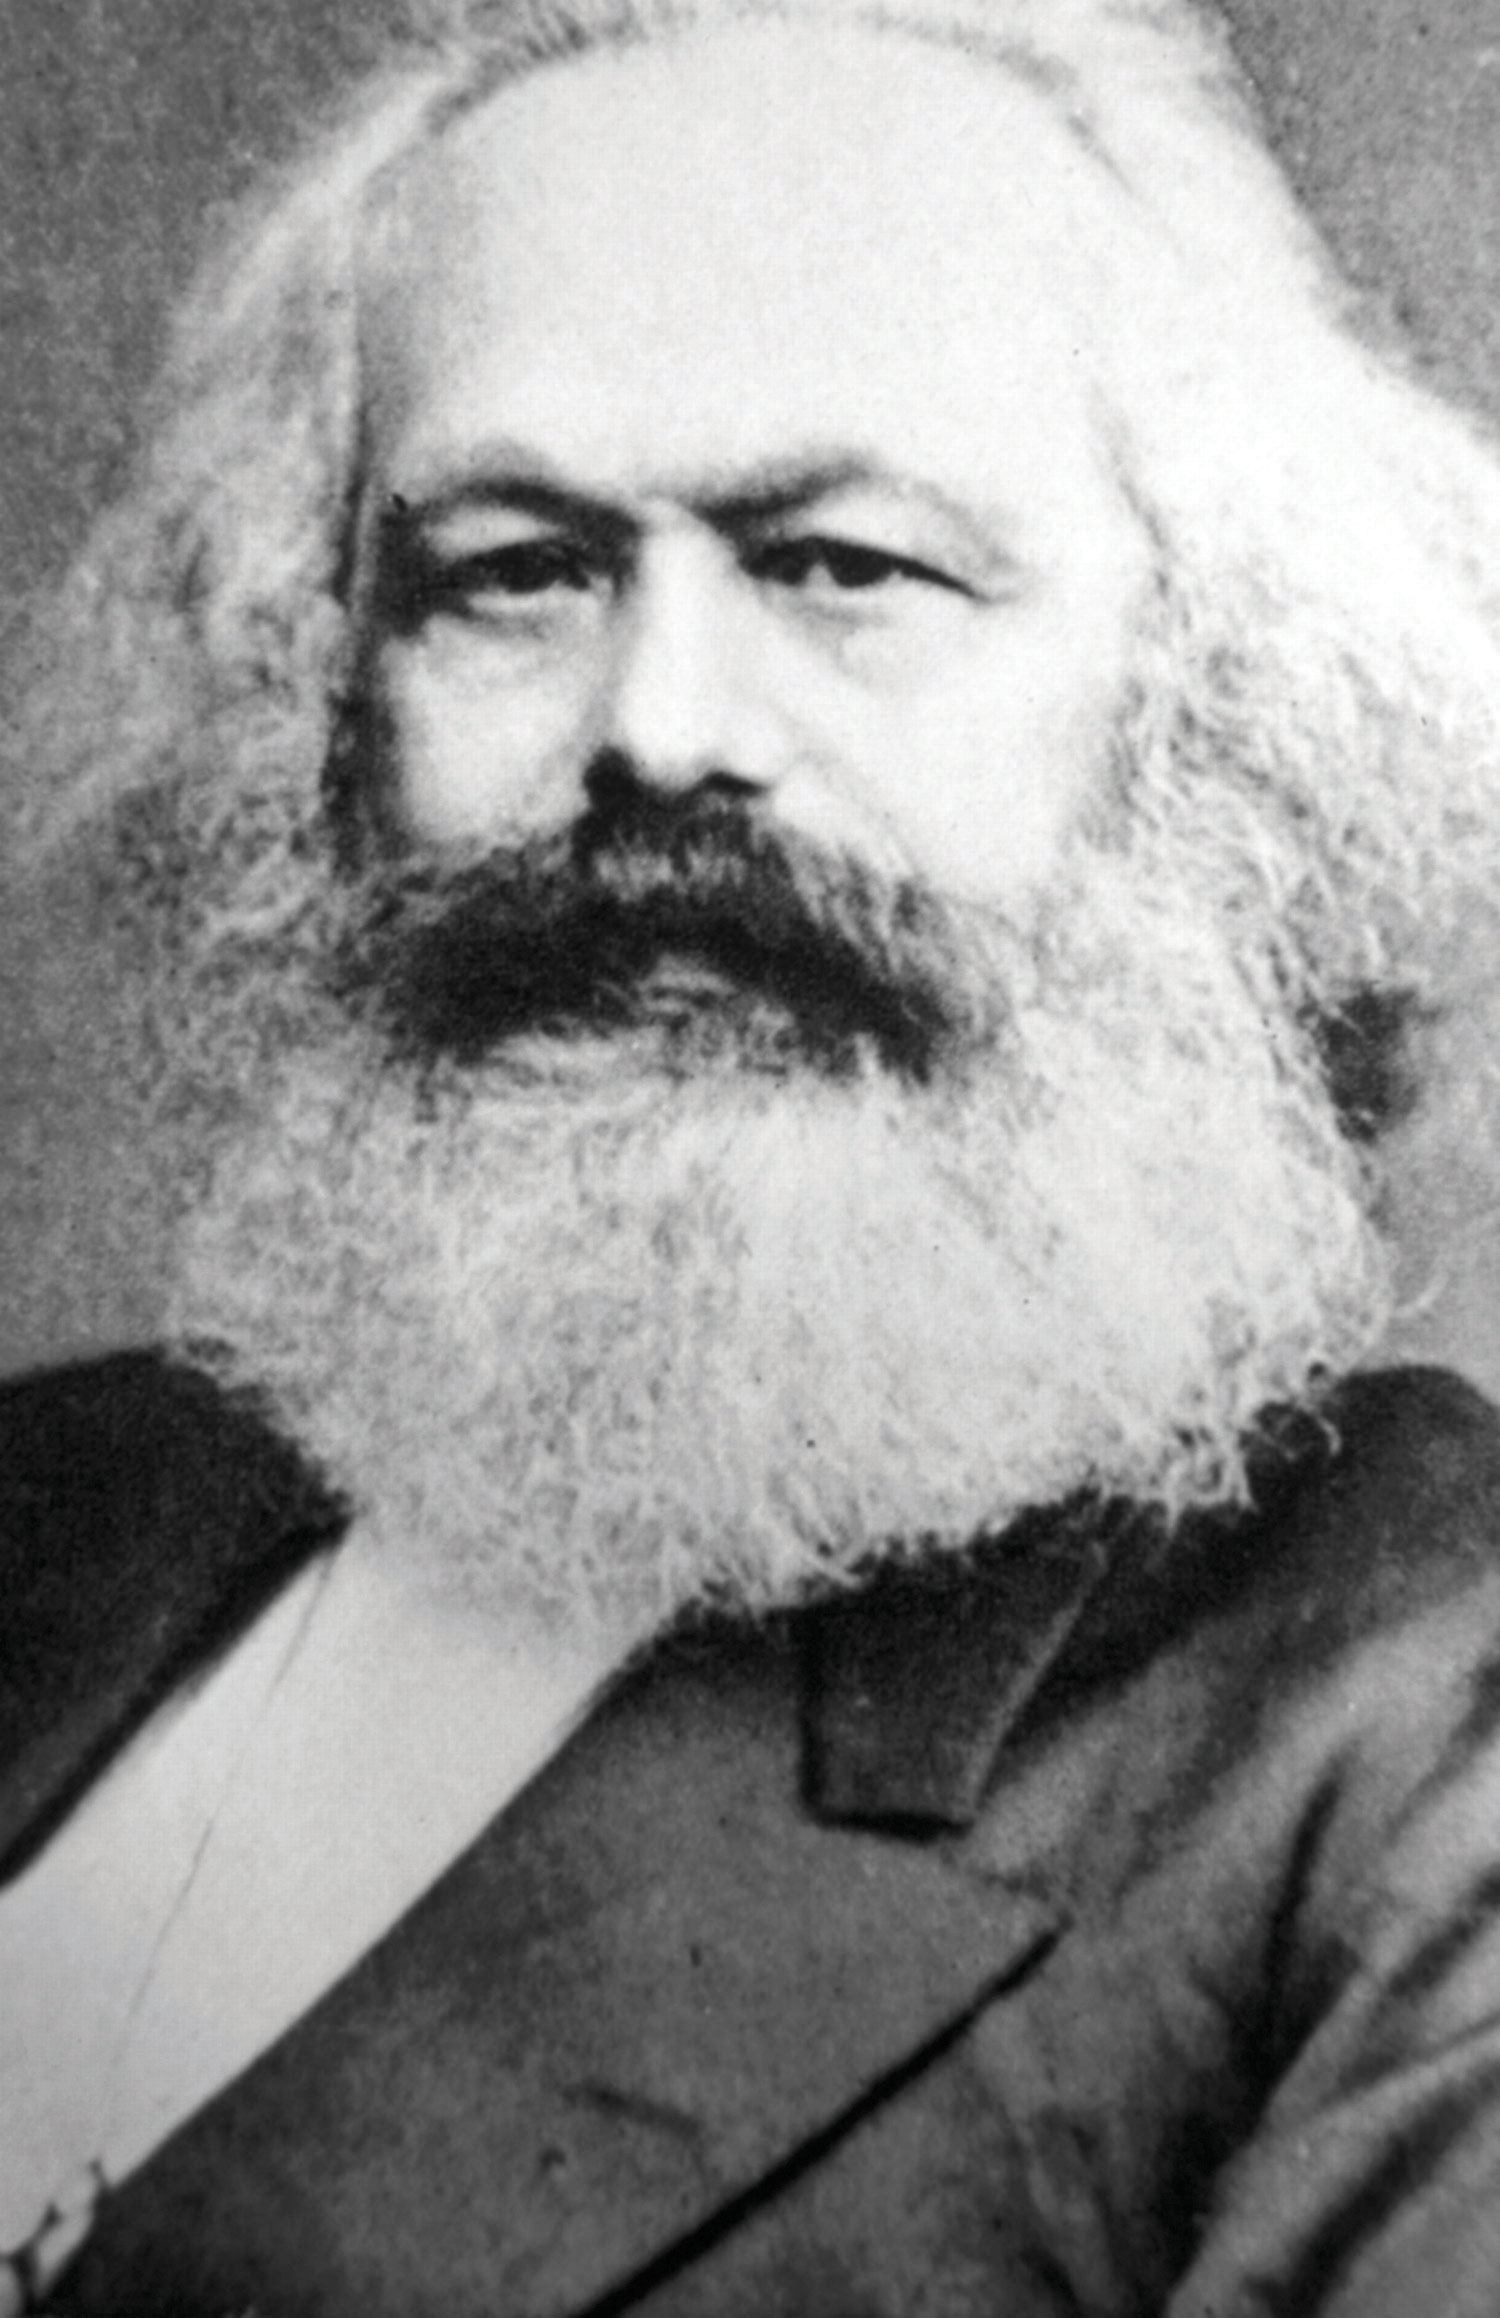 I need to write an essay on-Understanding Marx:A conflict perspective?